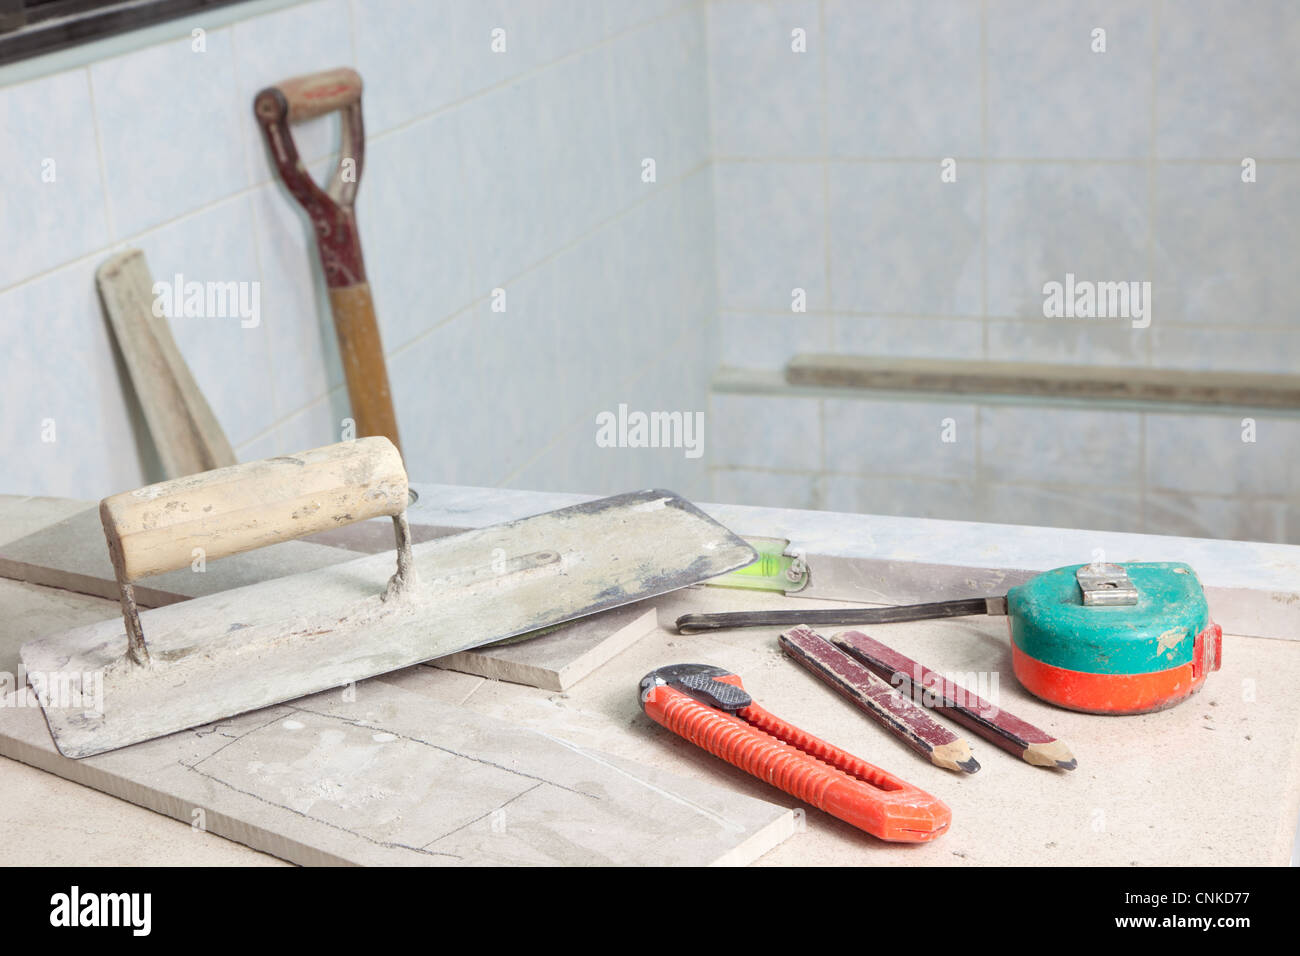 Tools used in a house renovation site - Stock Image